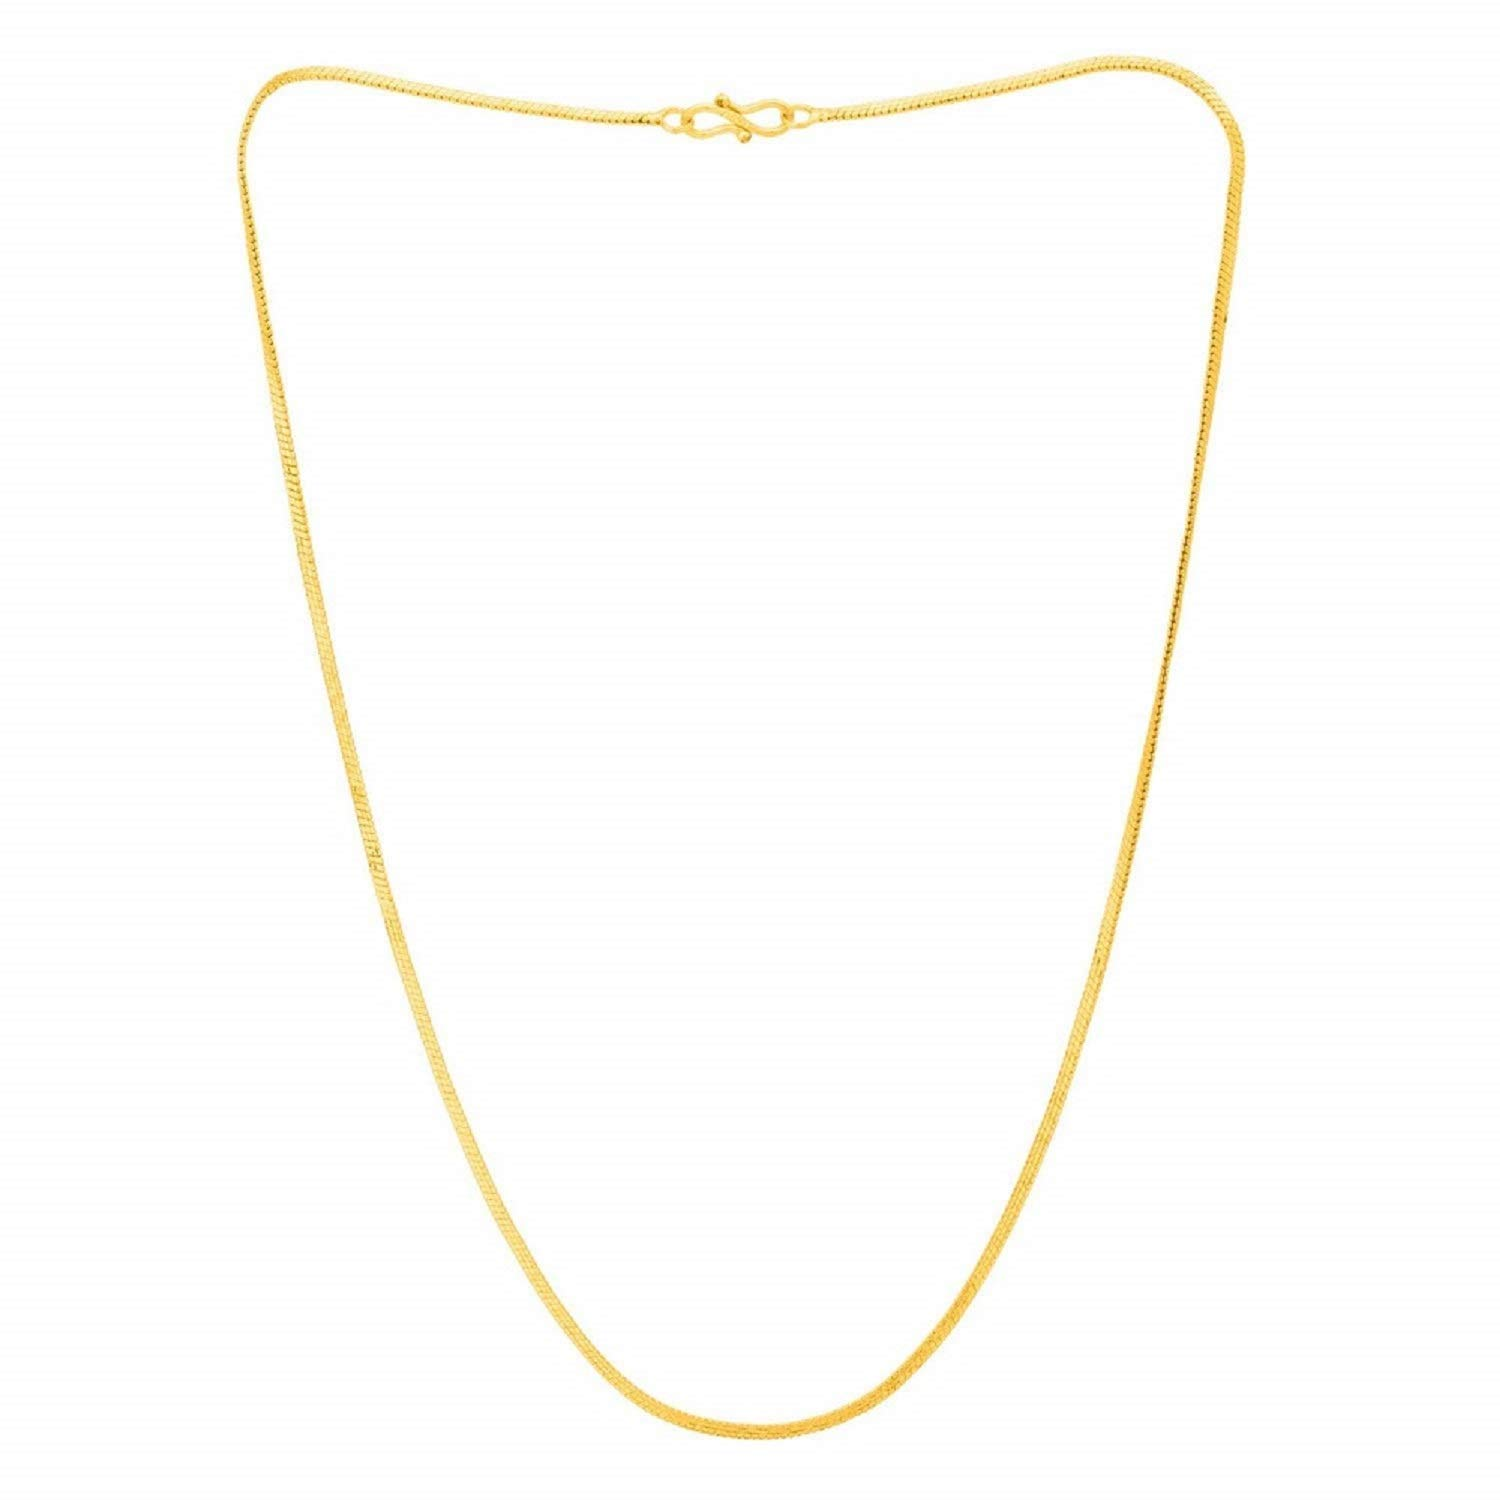 AFJ GOLD One Gram Gold Plated Designer Ethnic Fashion Jewellery Rhodium  Coated Gents Neck Chain for Mens and Boys(18 INCHS).